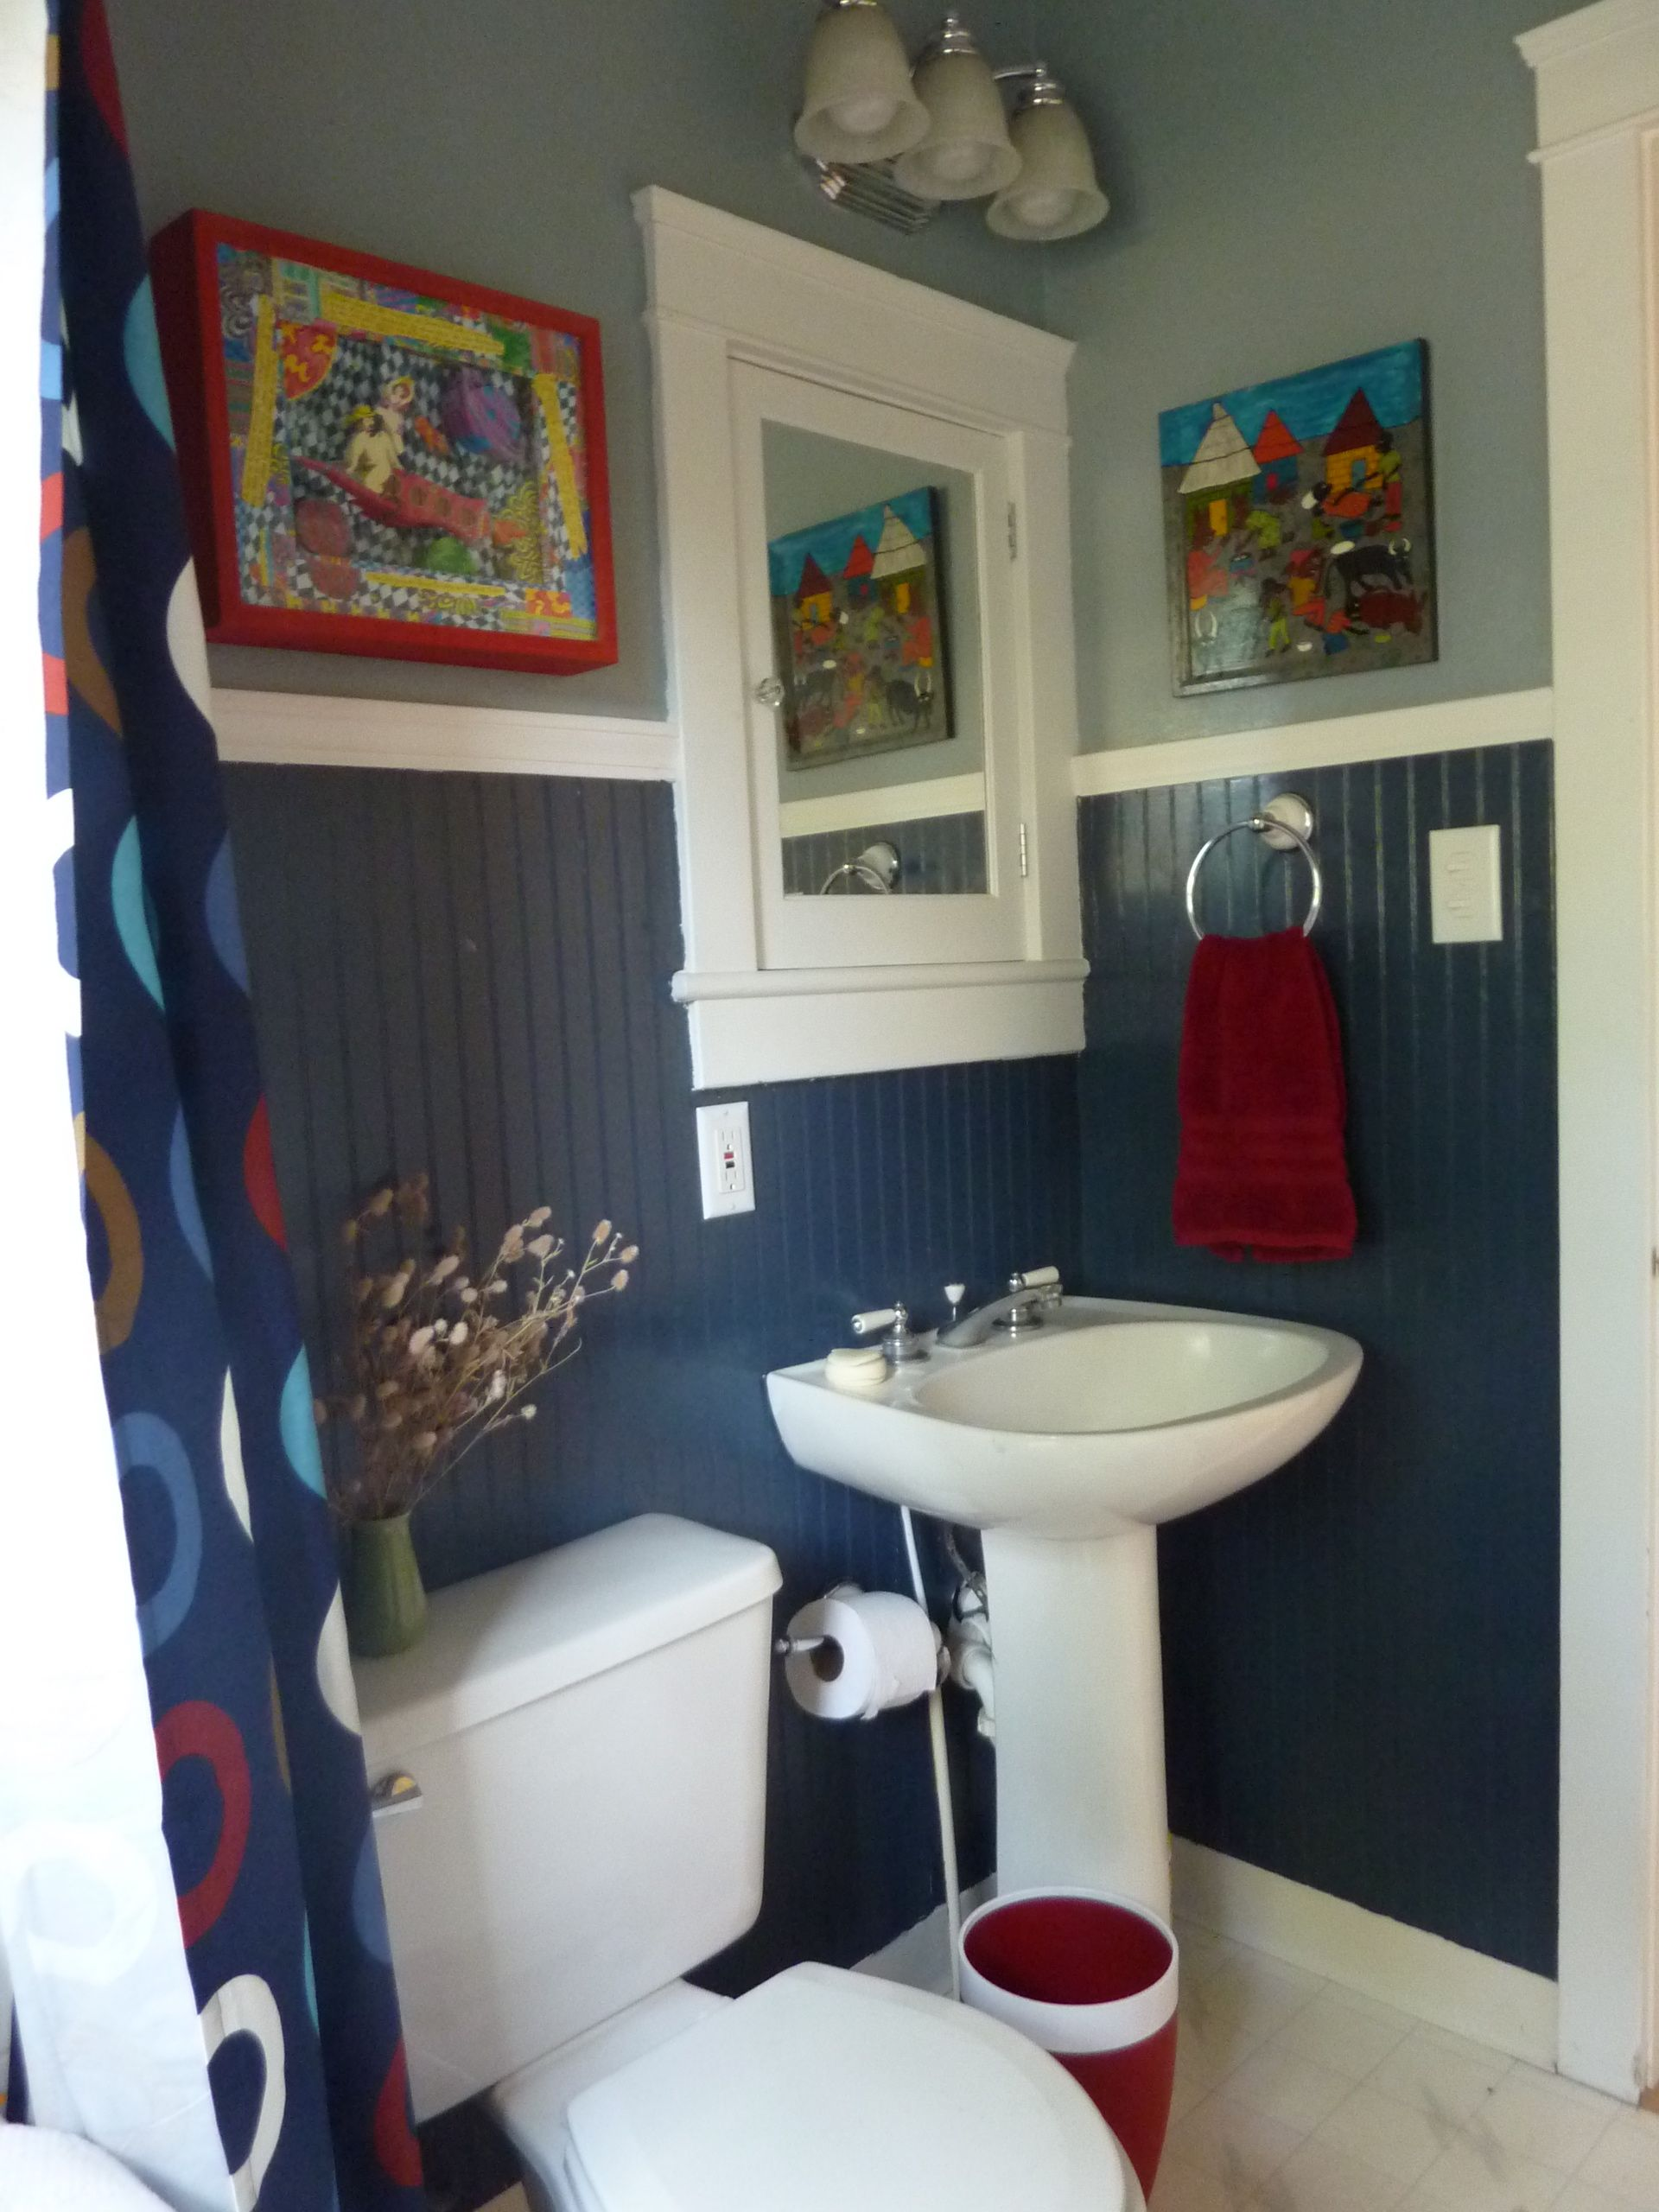 Fun Bathroom Bathroom on Sich – Bathroom Fun